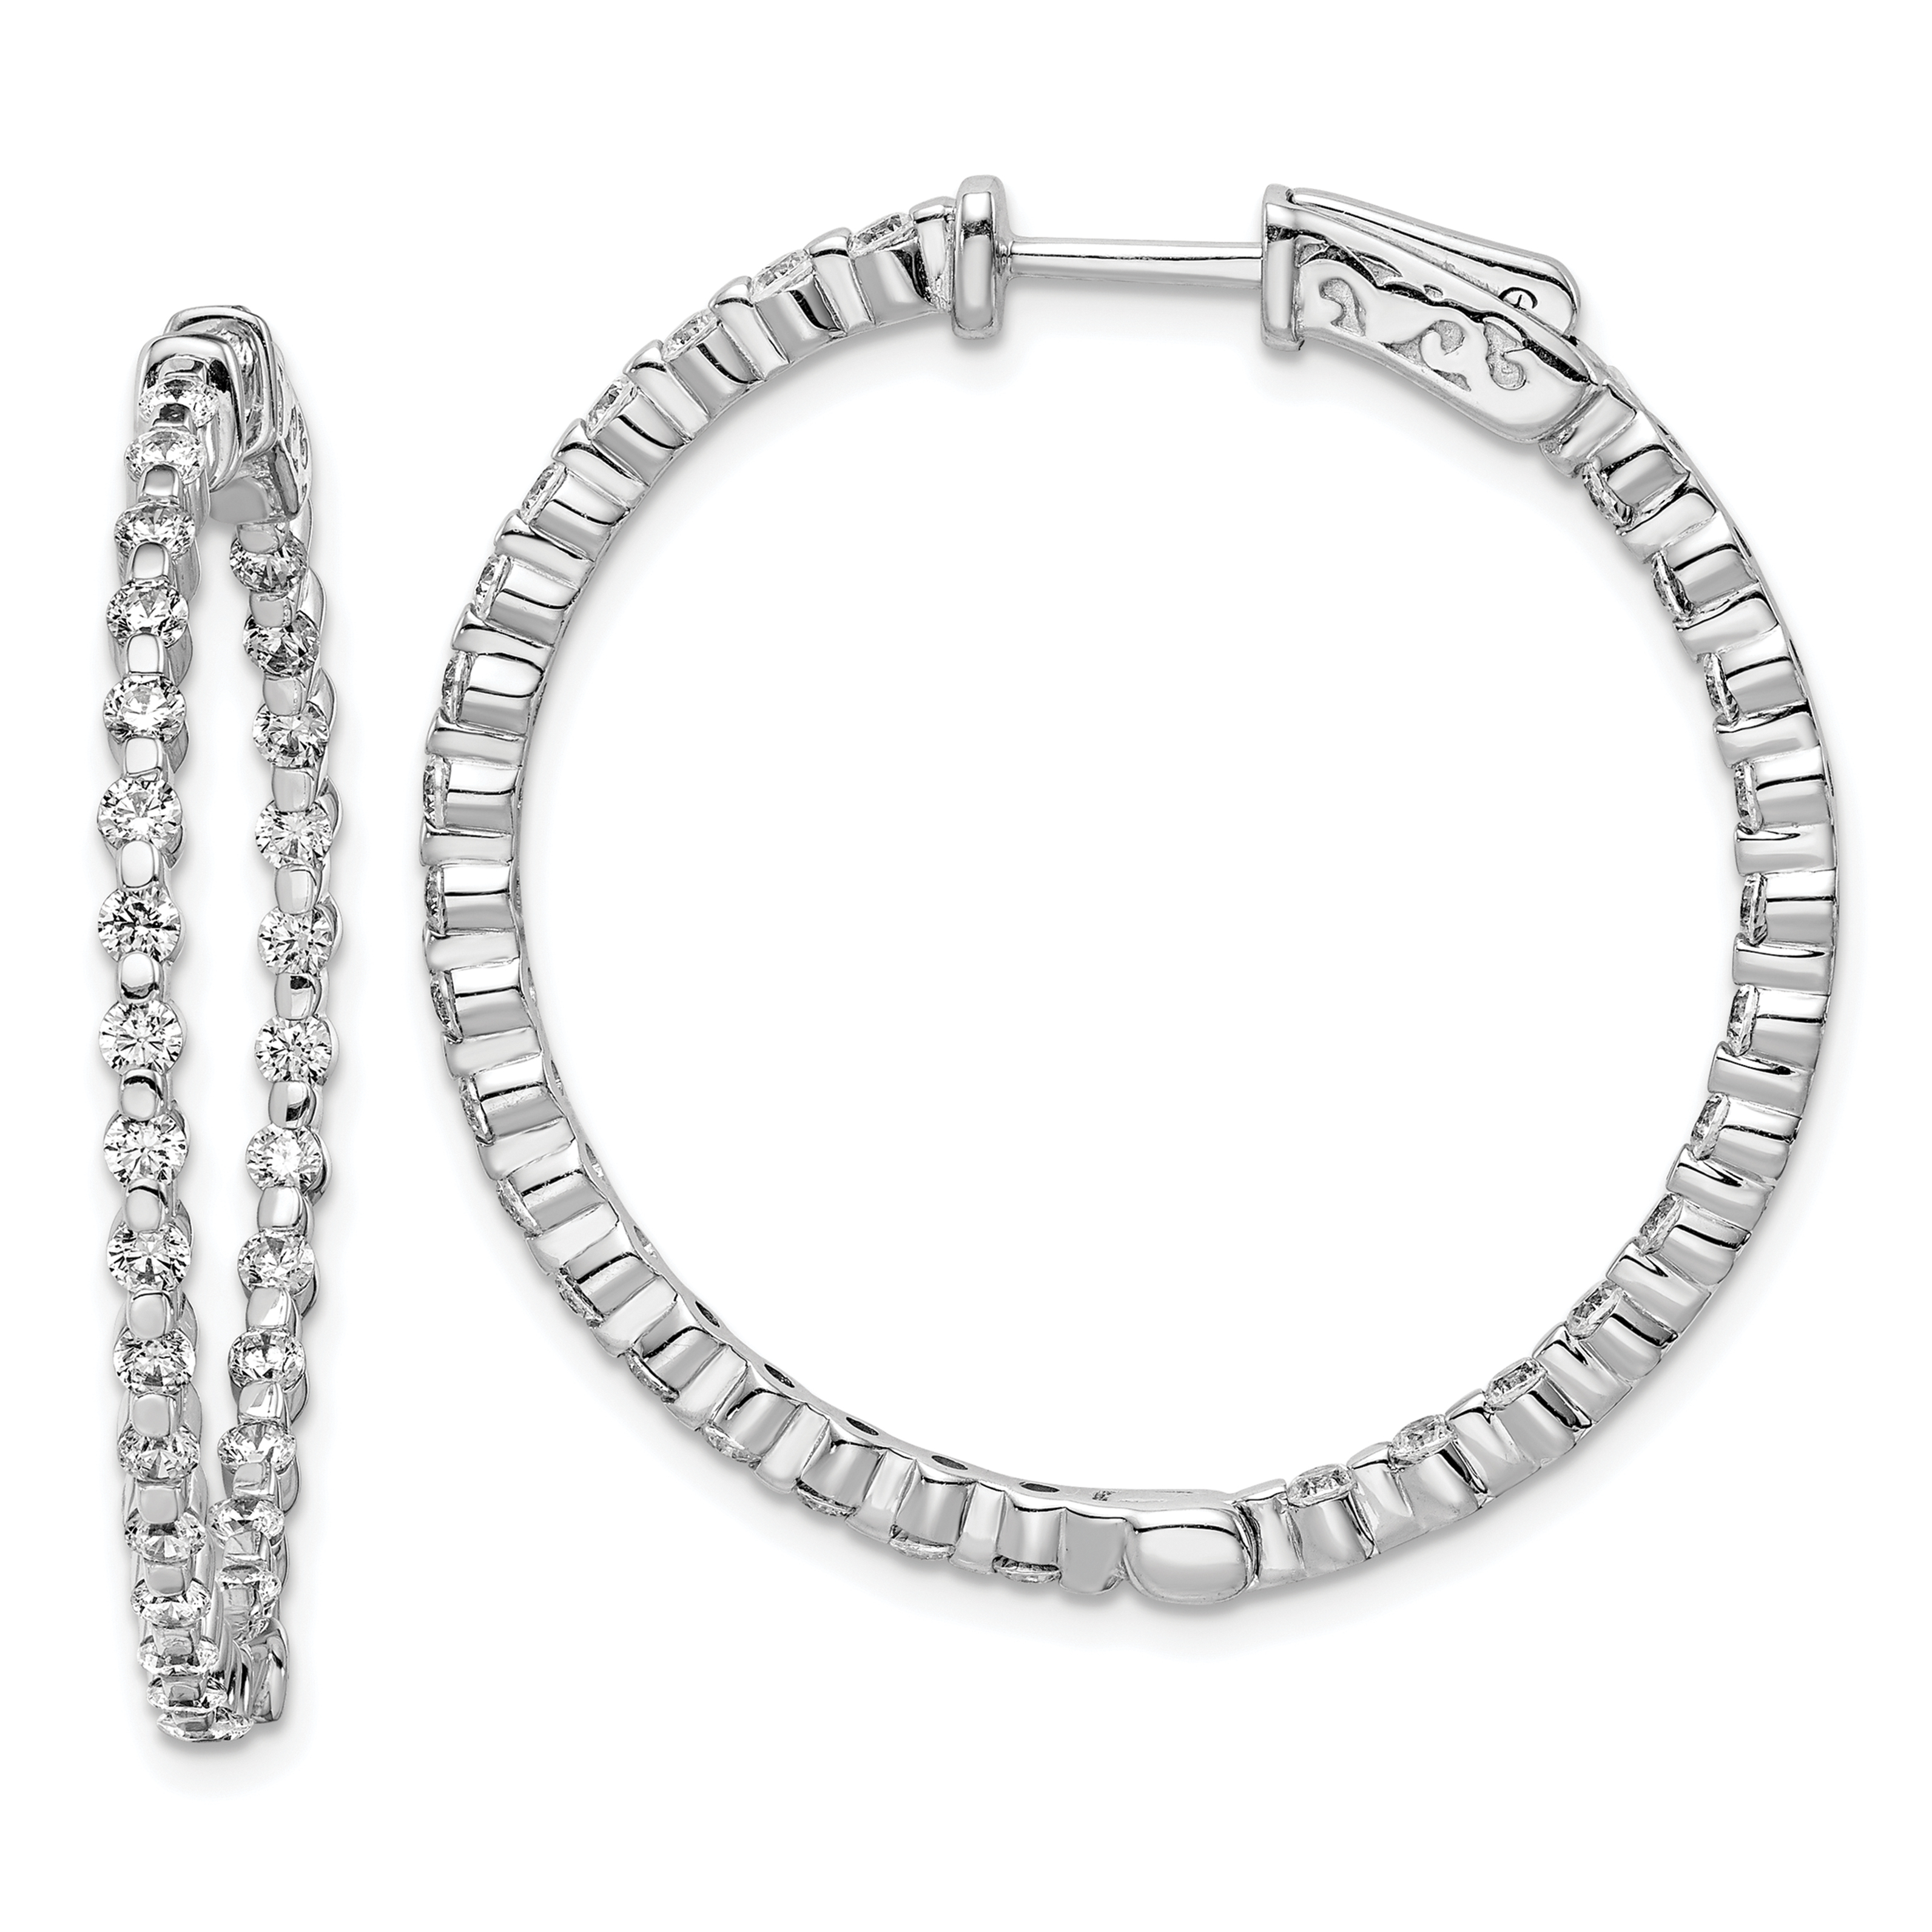 925 Sterling Silver Cubic Zirconia Cz In Out Hinged Hoop Earrings Ear Hoops Set Fine Jewelry Gifts For Women For Her - image 4 of 4